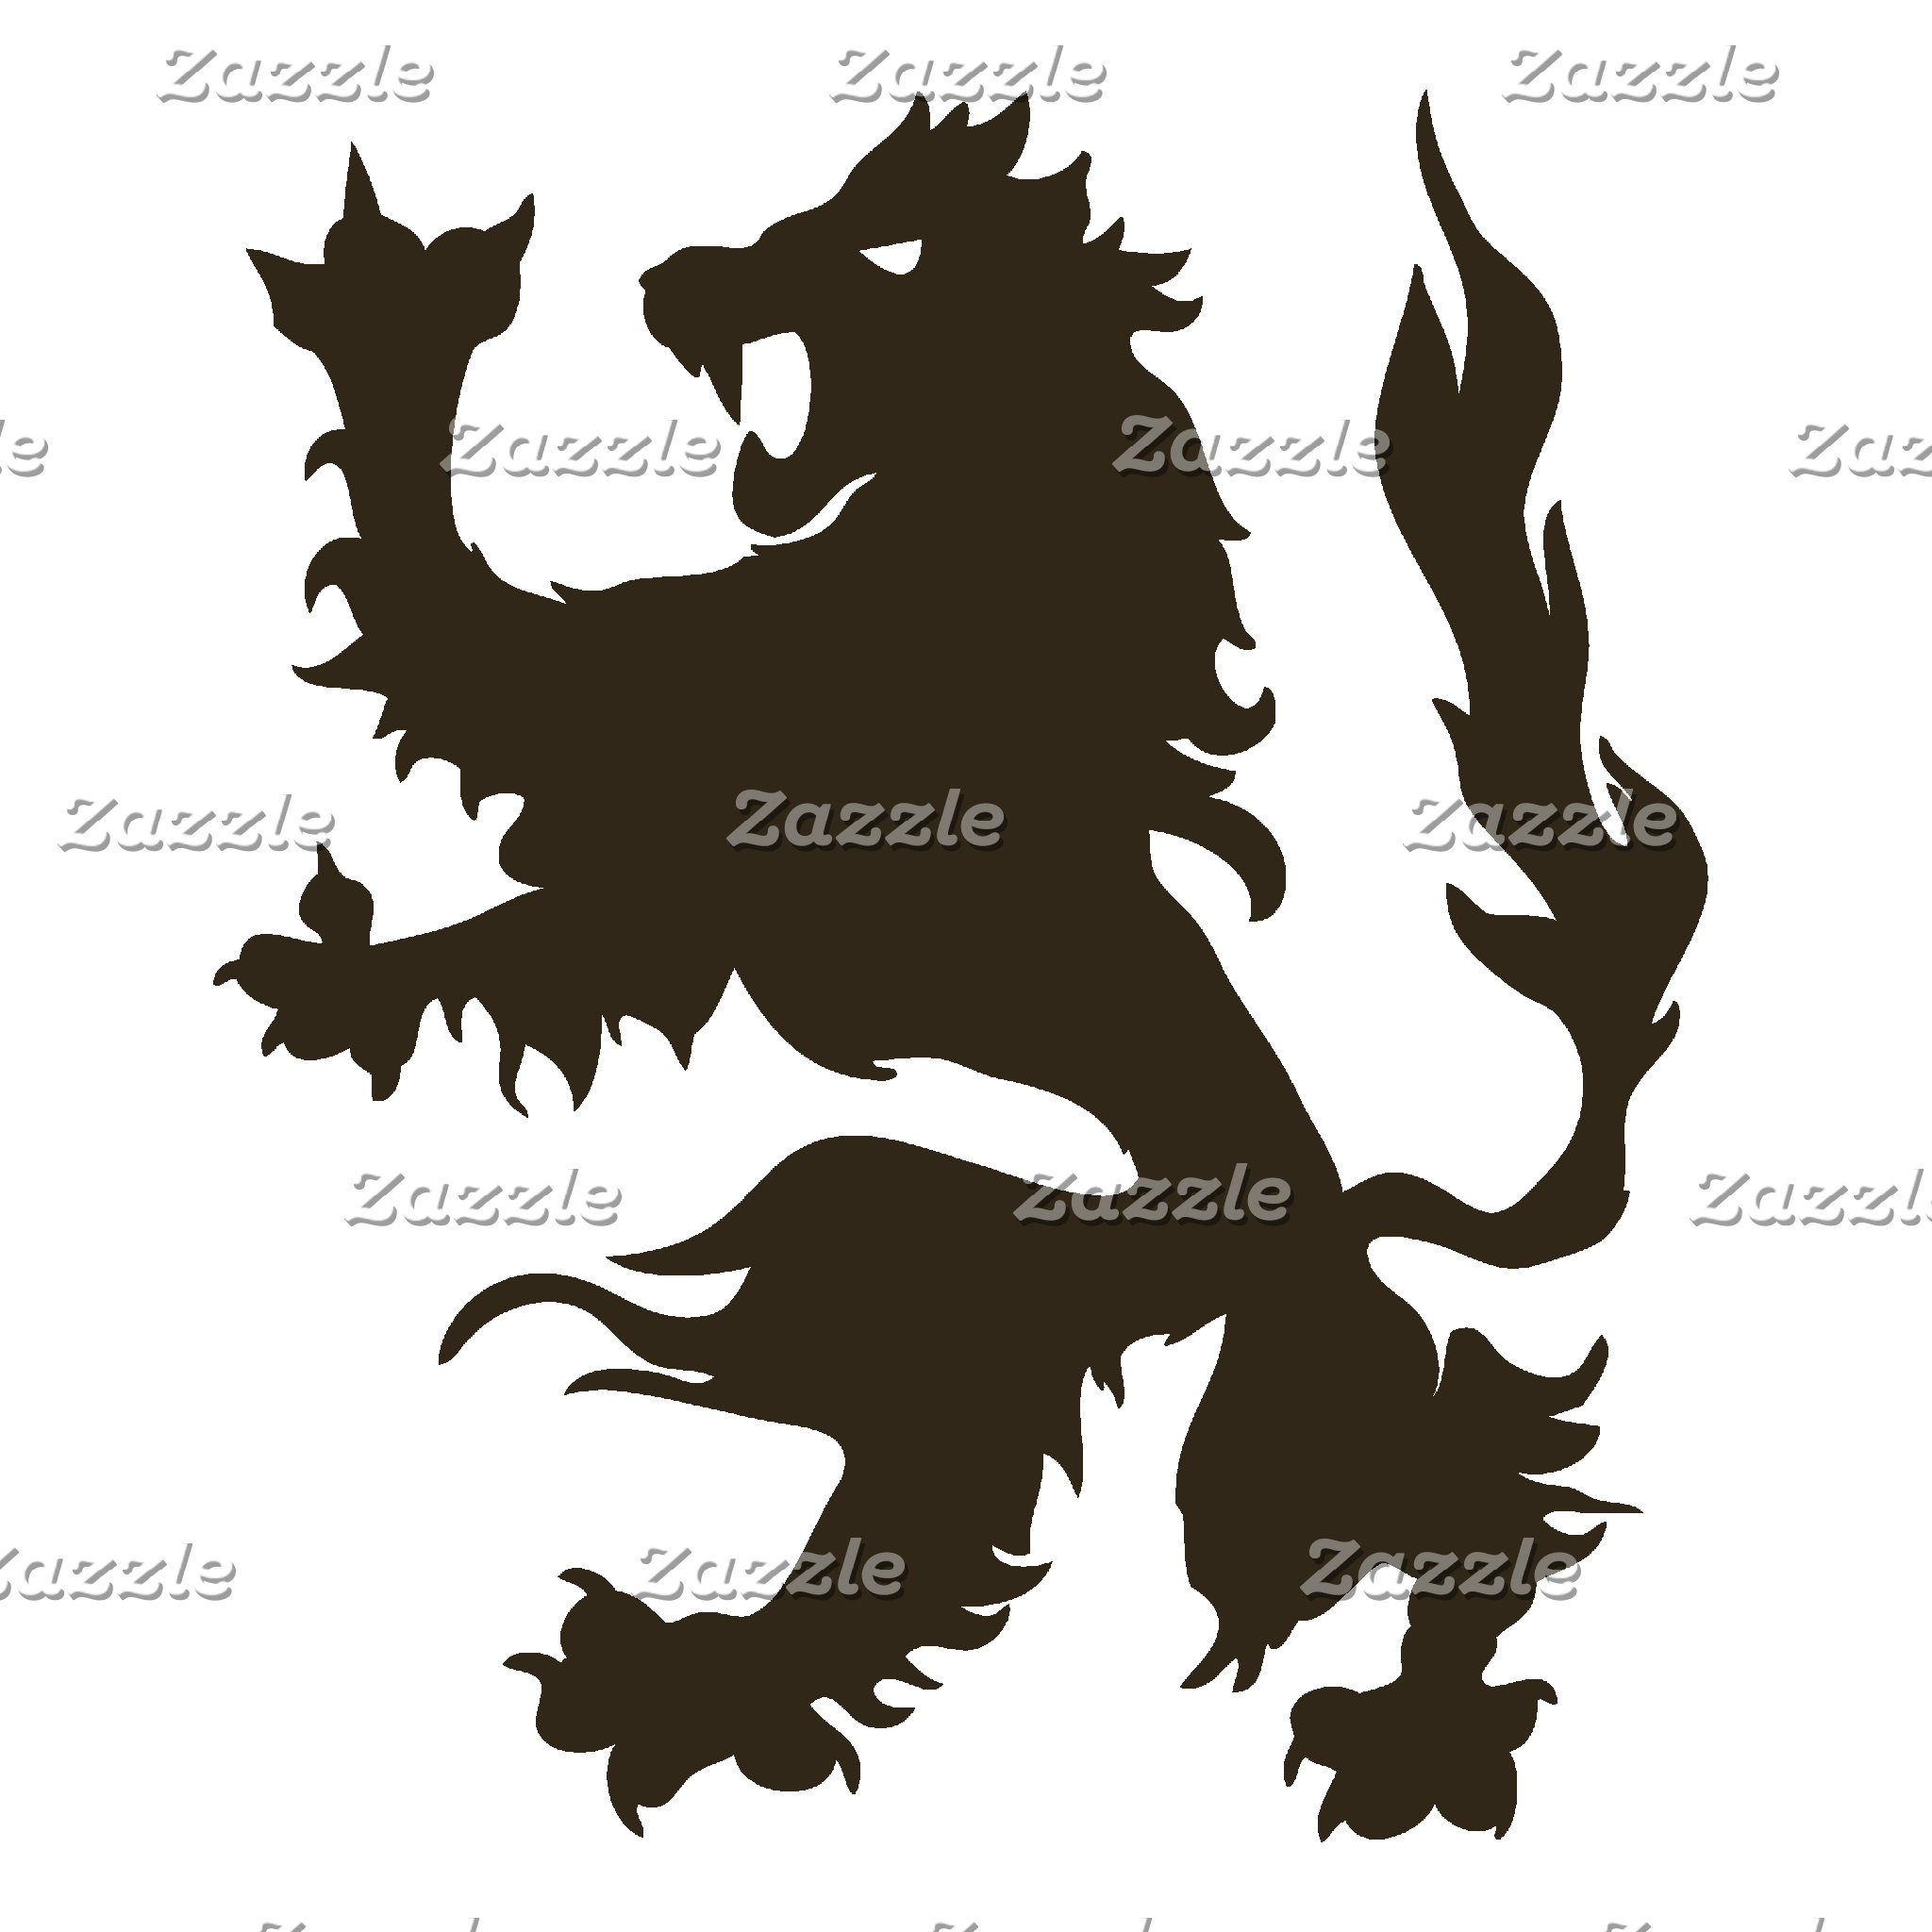 Griffin Legendary Creature of Folklore